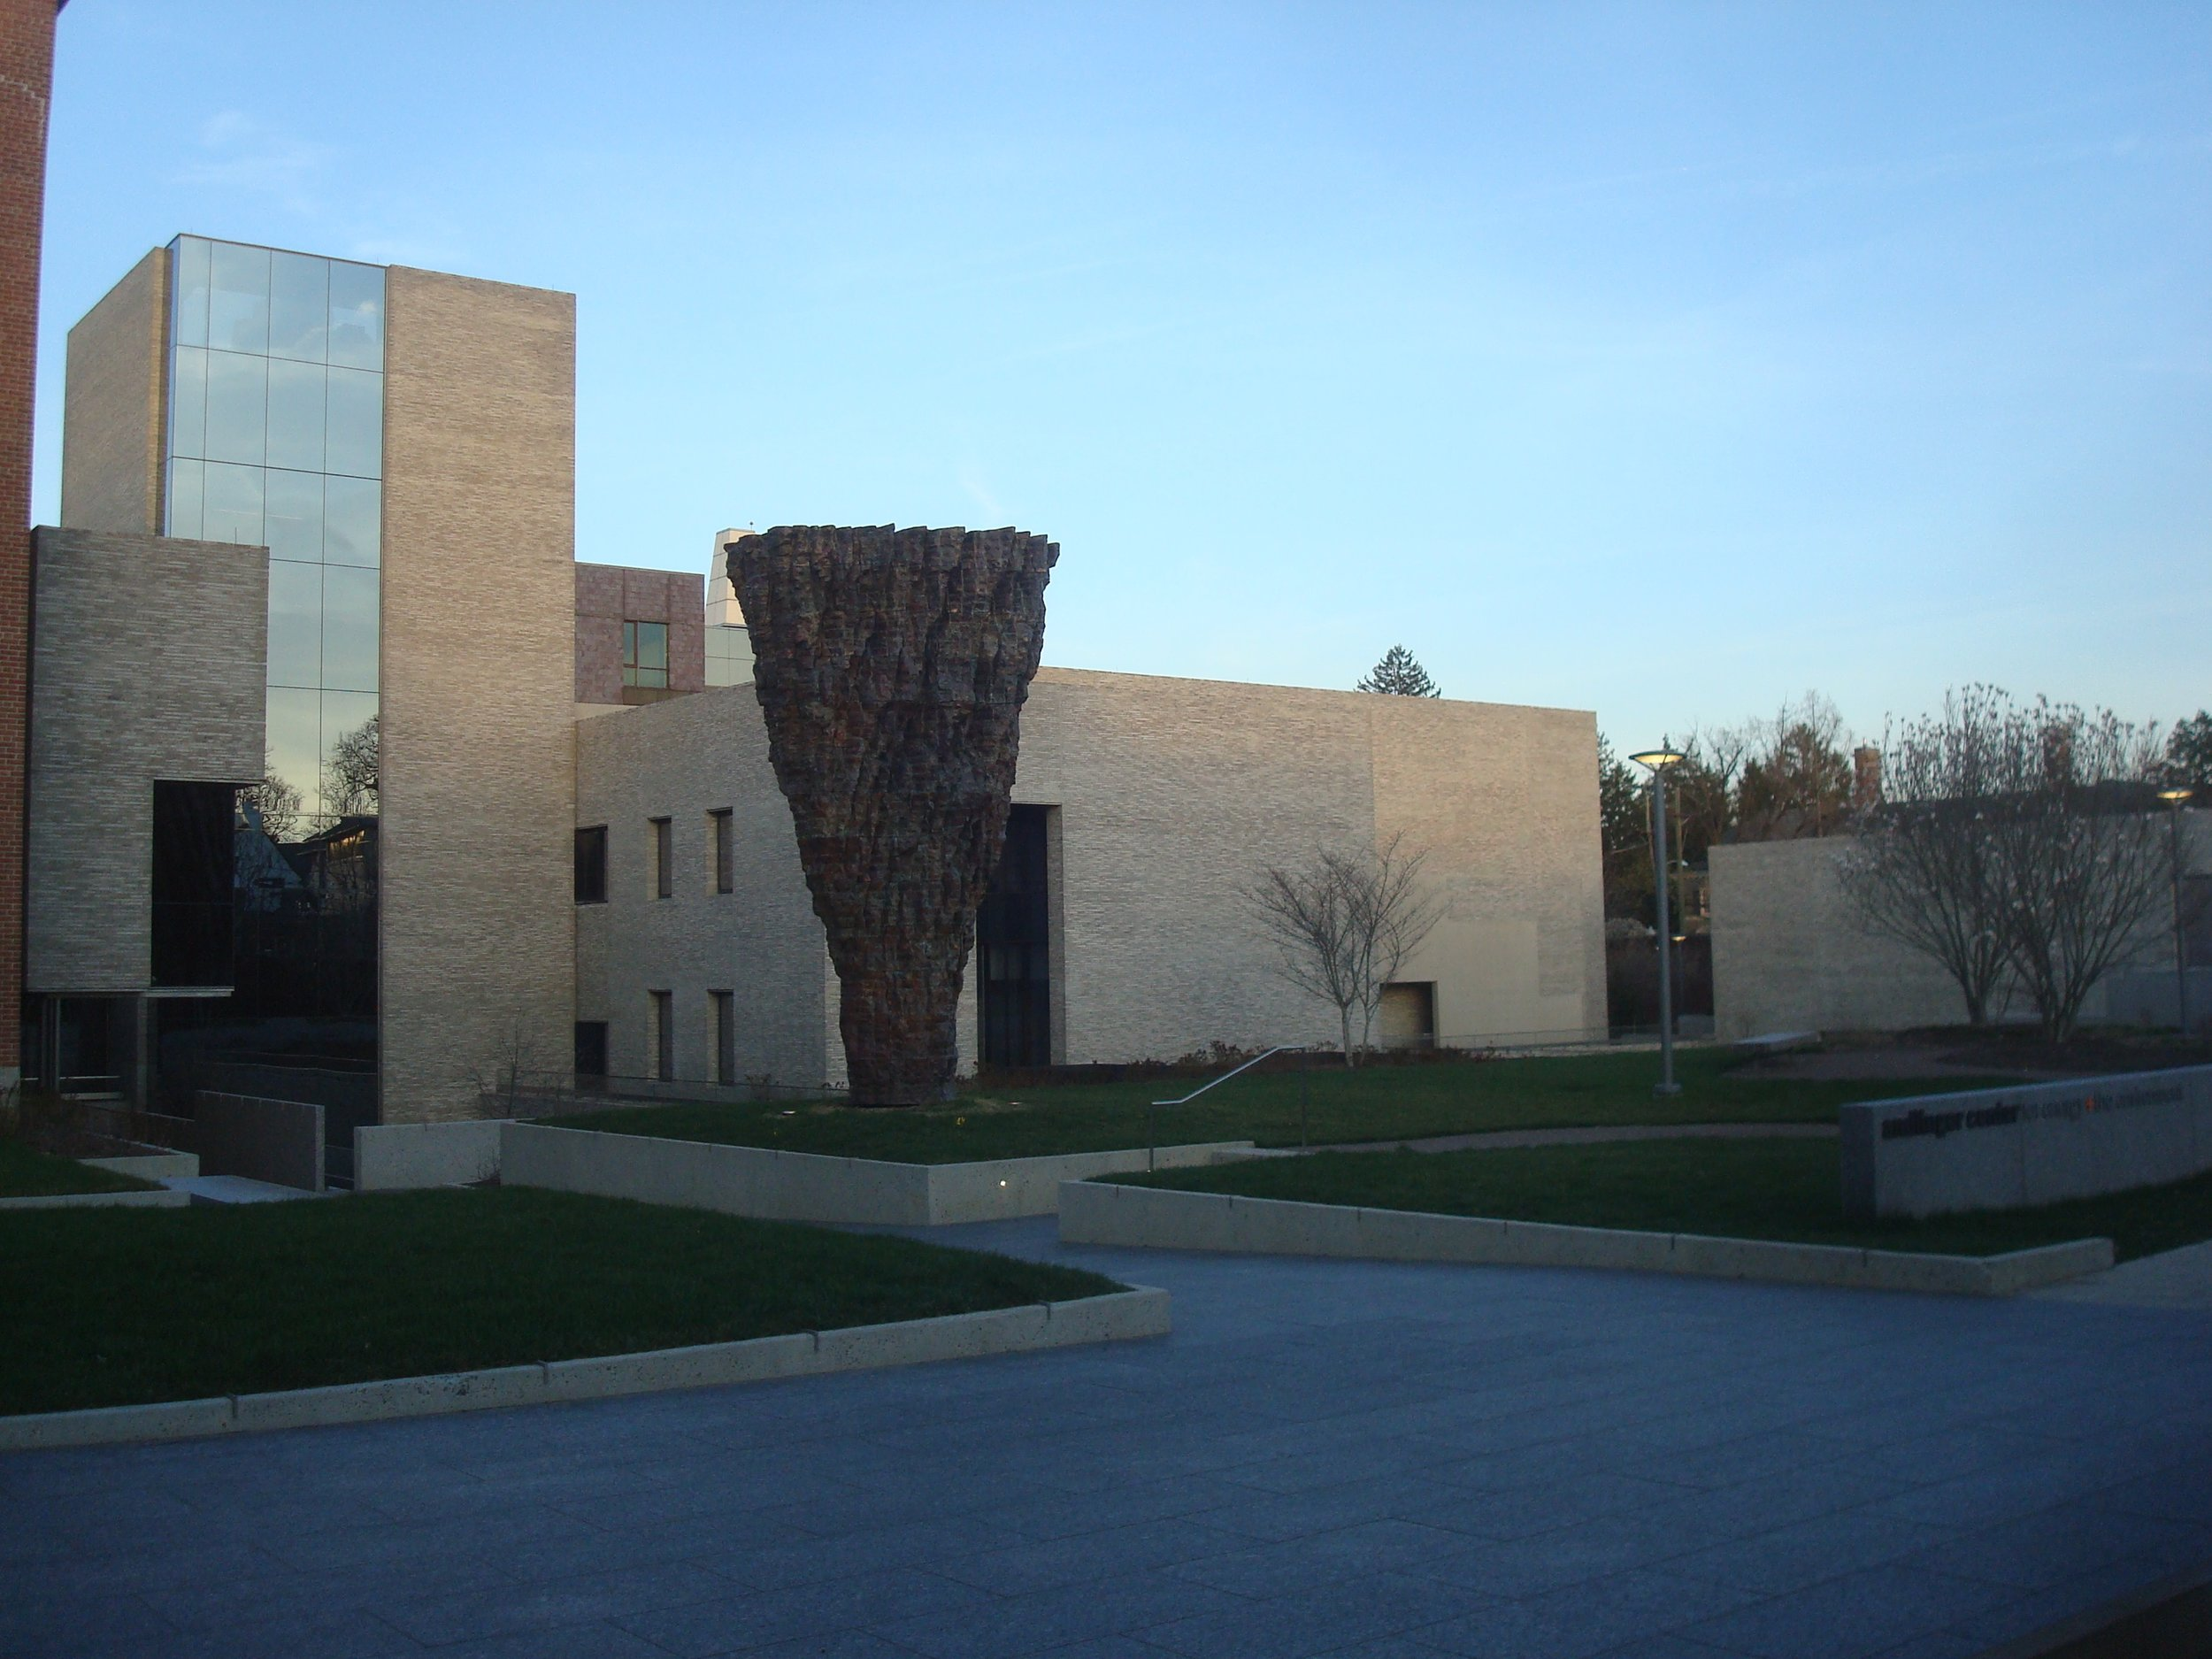 And linger Center for Energy and the Environment